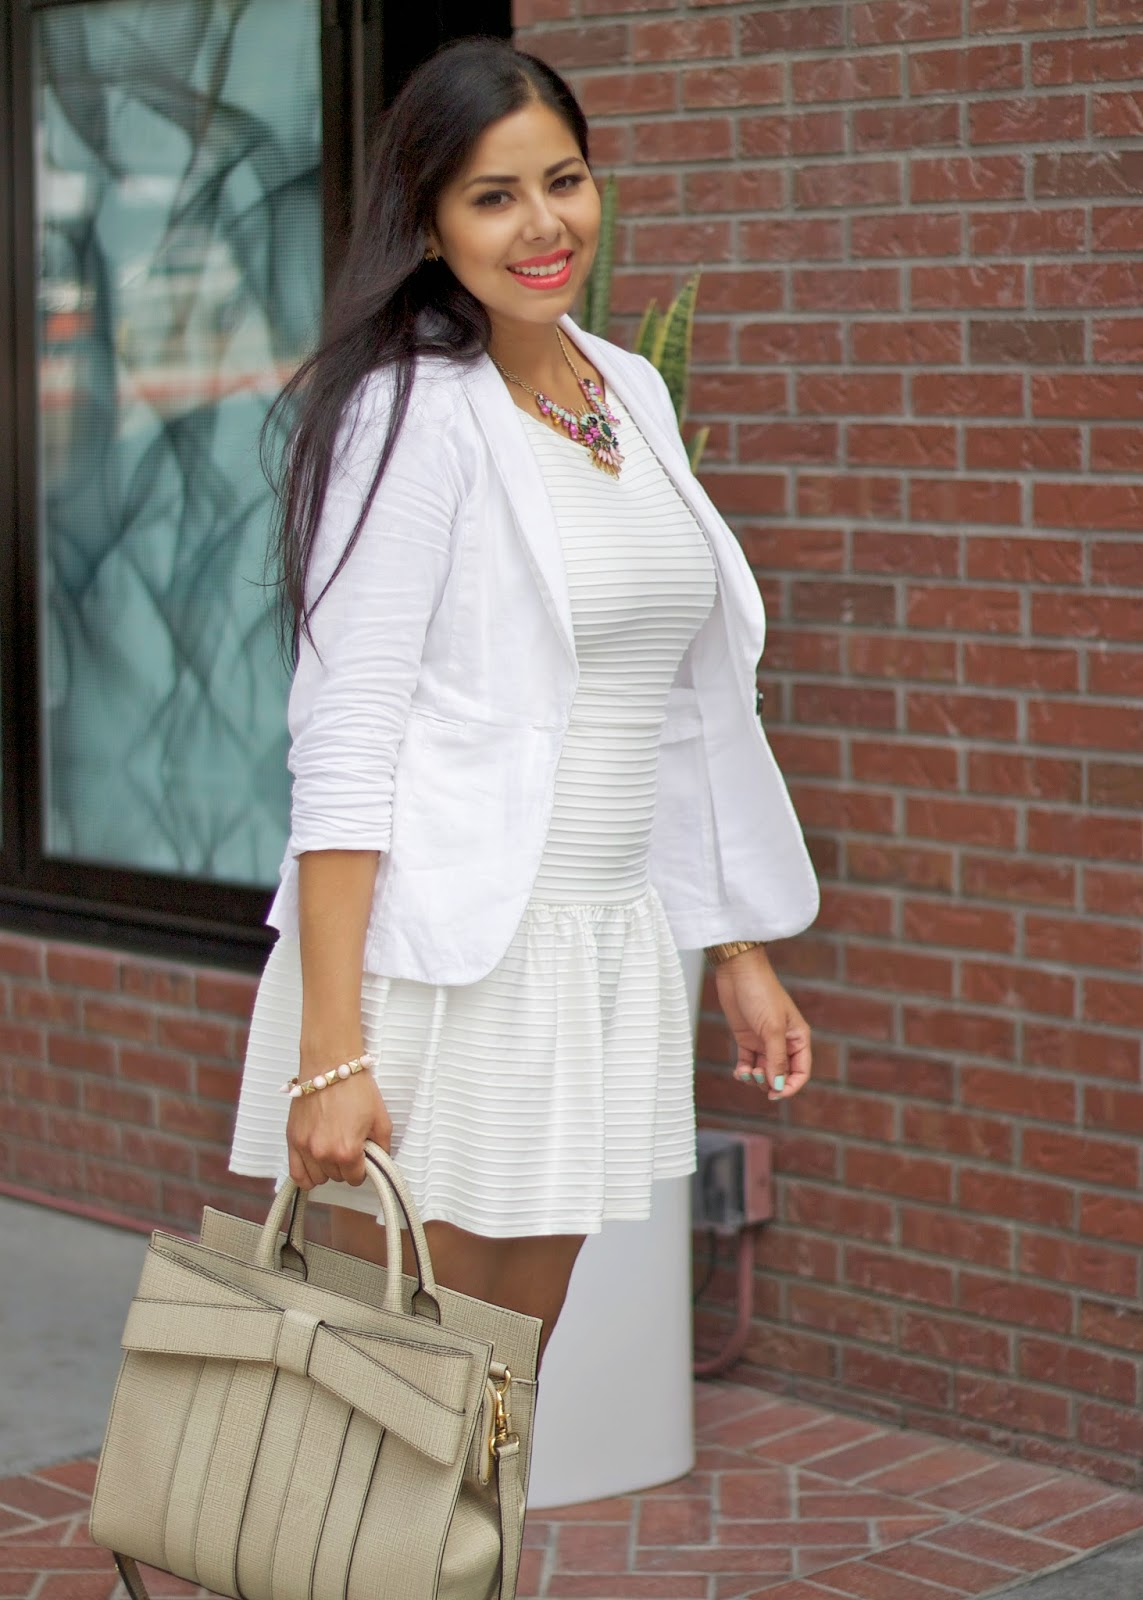 All white outfit, white chic outfit, zac posen handbag, z by zac posen purse, zac posen bow purse, all white ootd